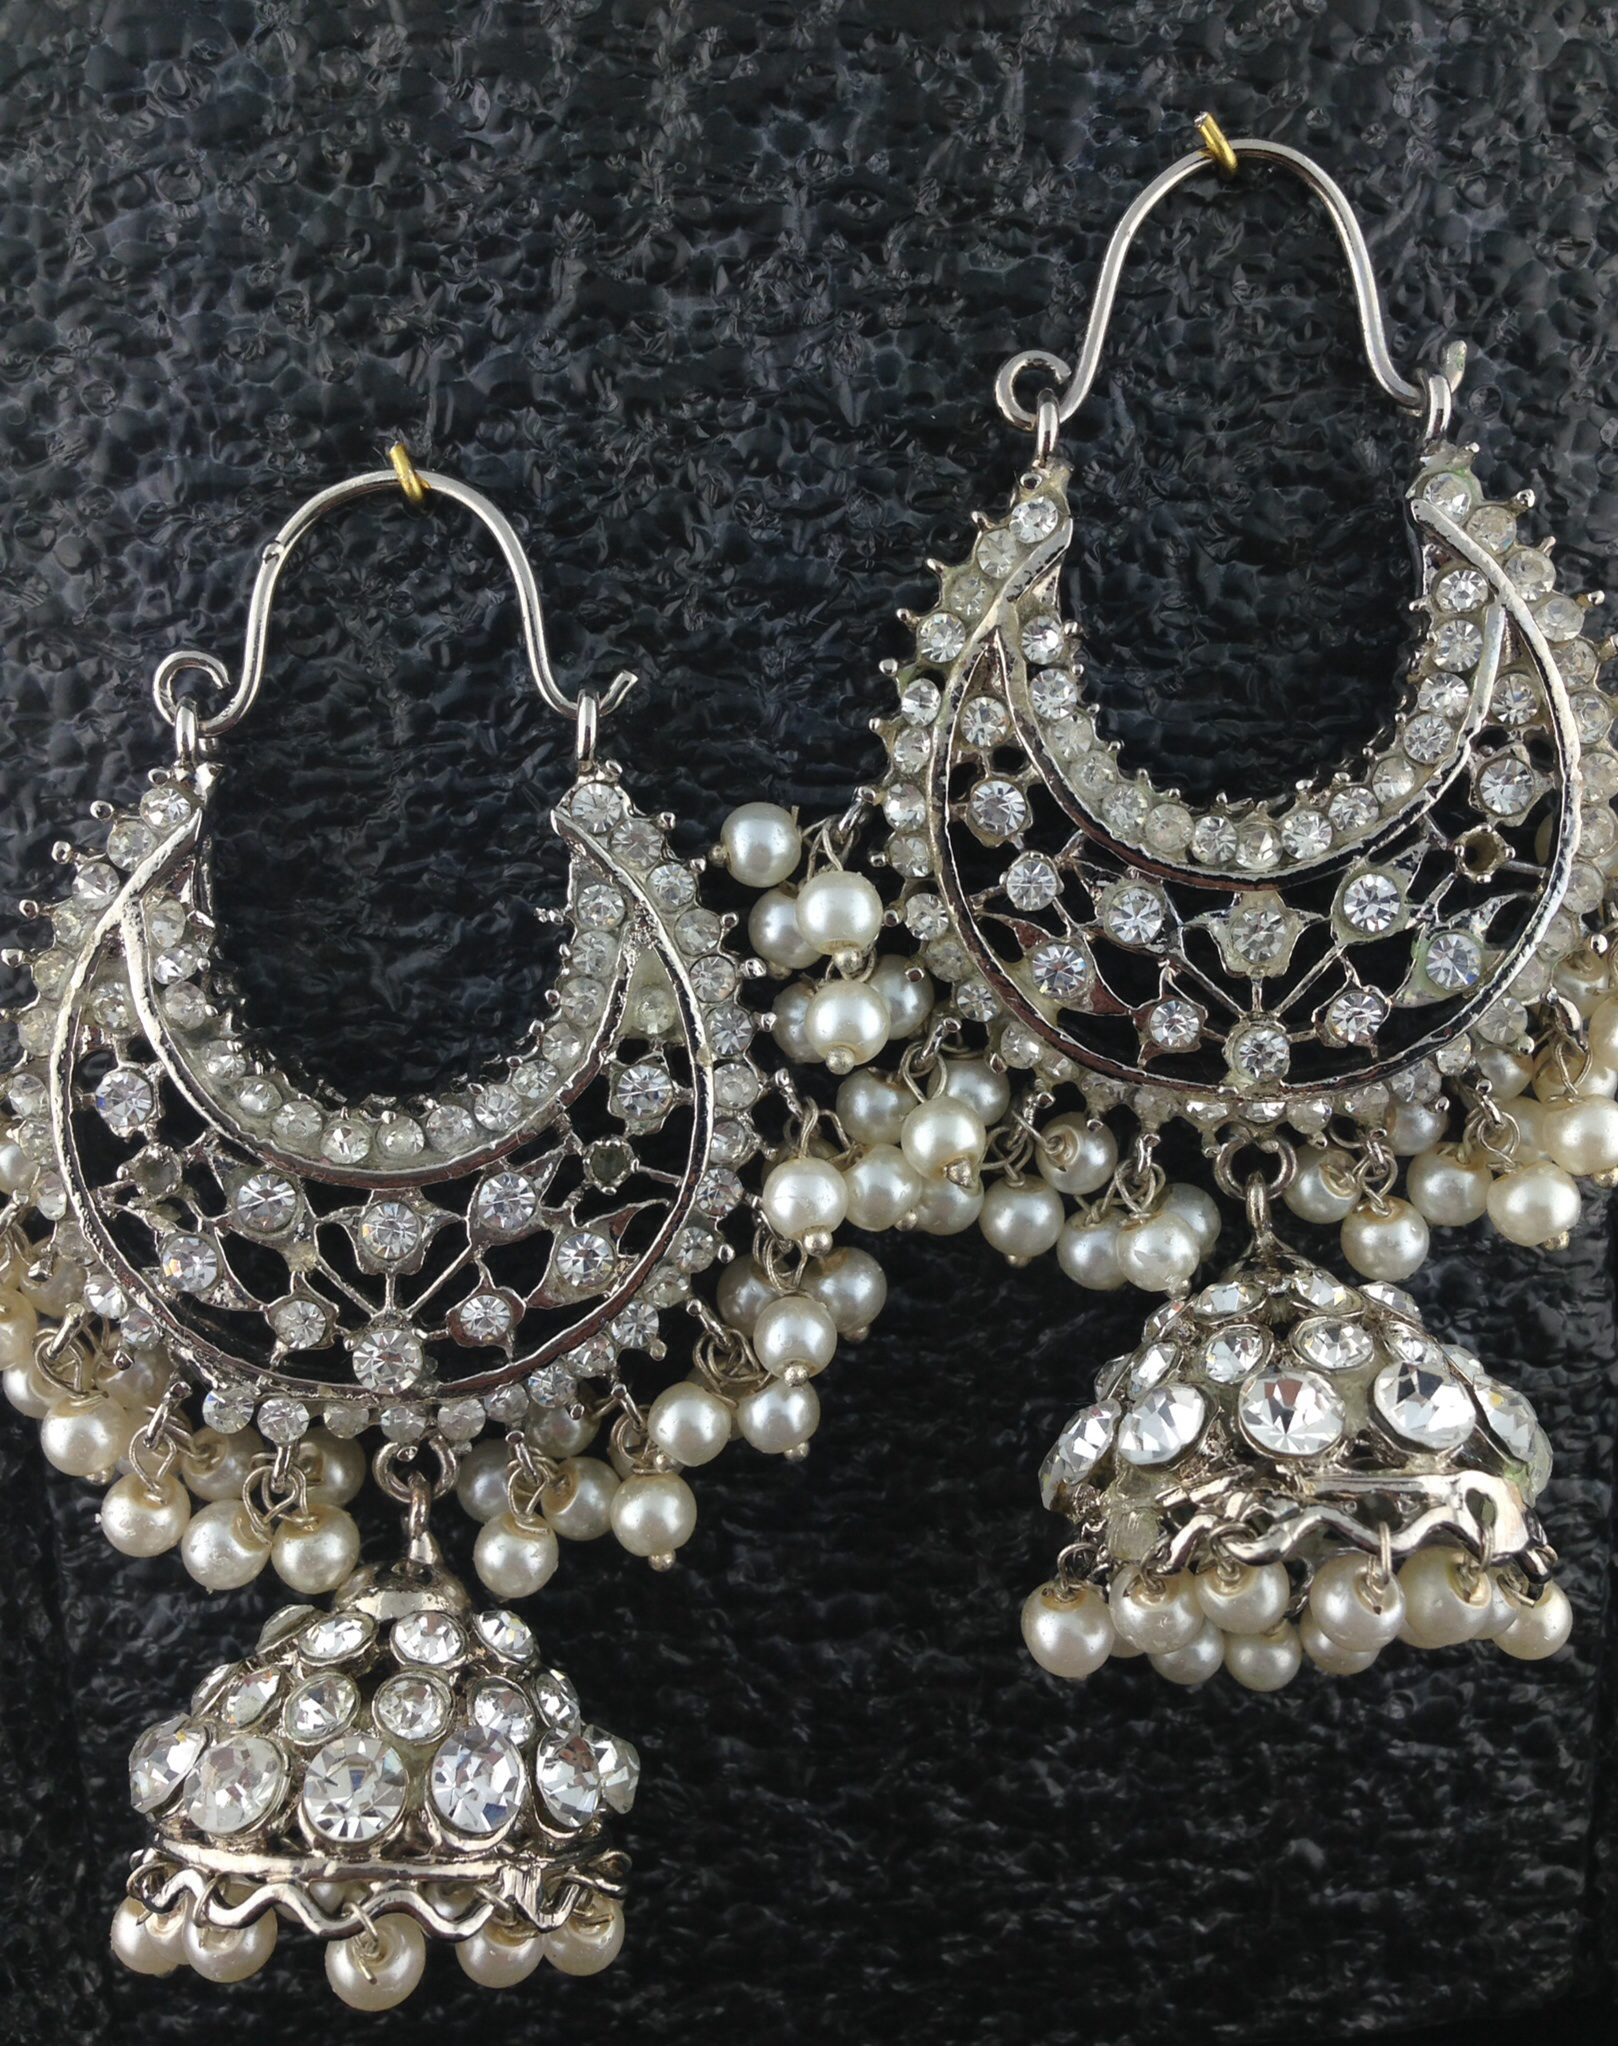 Silver Chand Bali With Pearls And Crystal.